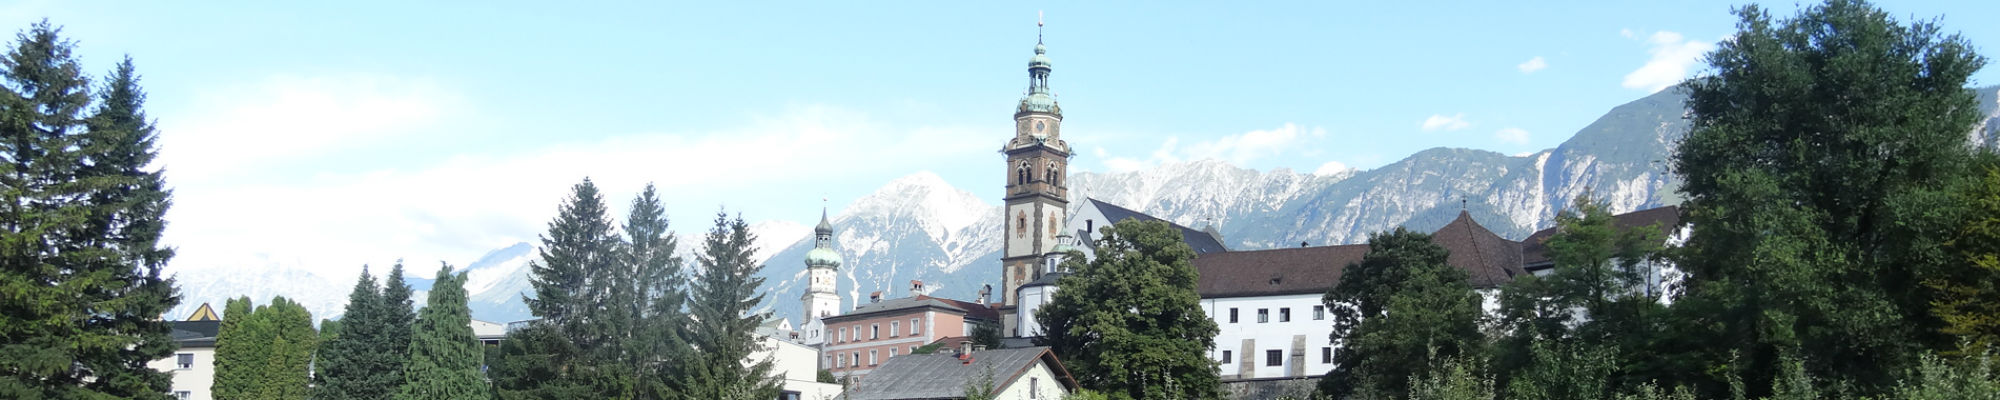 Panorama Klaraheim Hall in Tirol